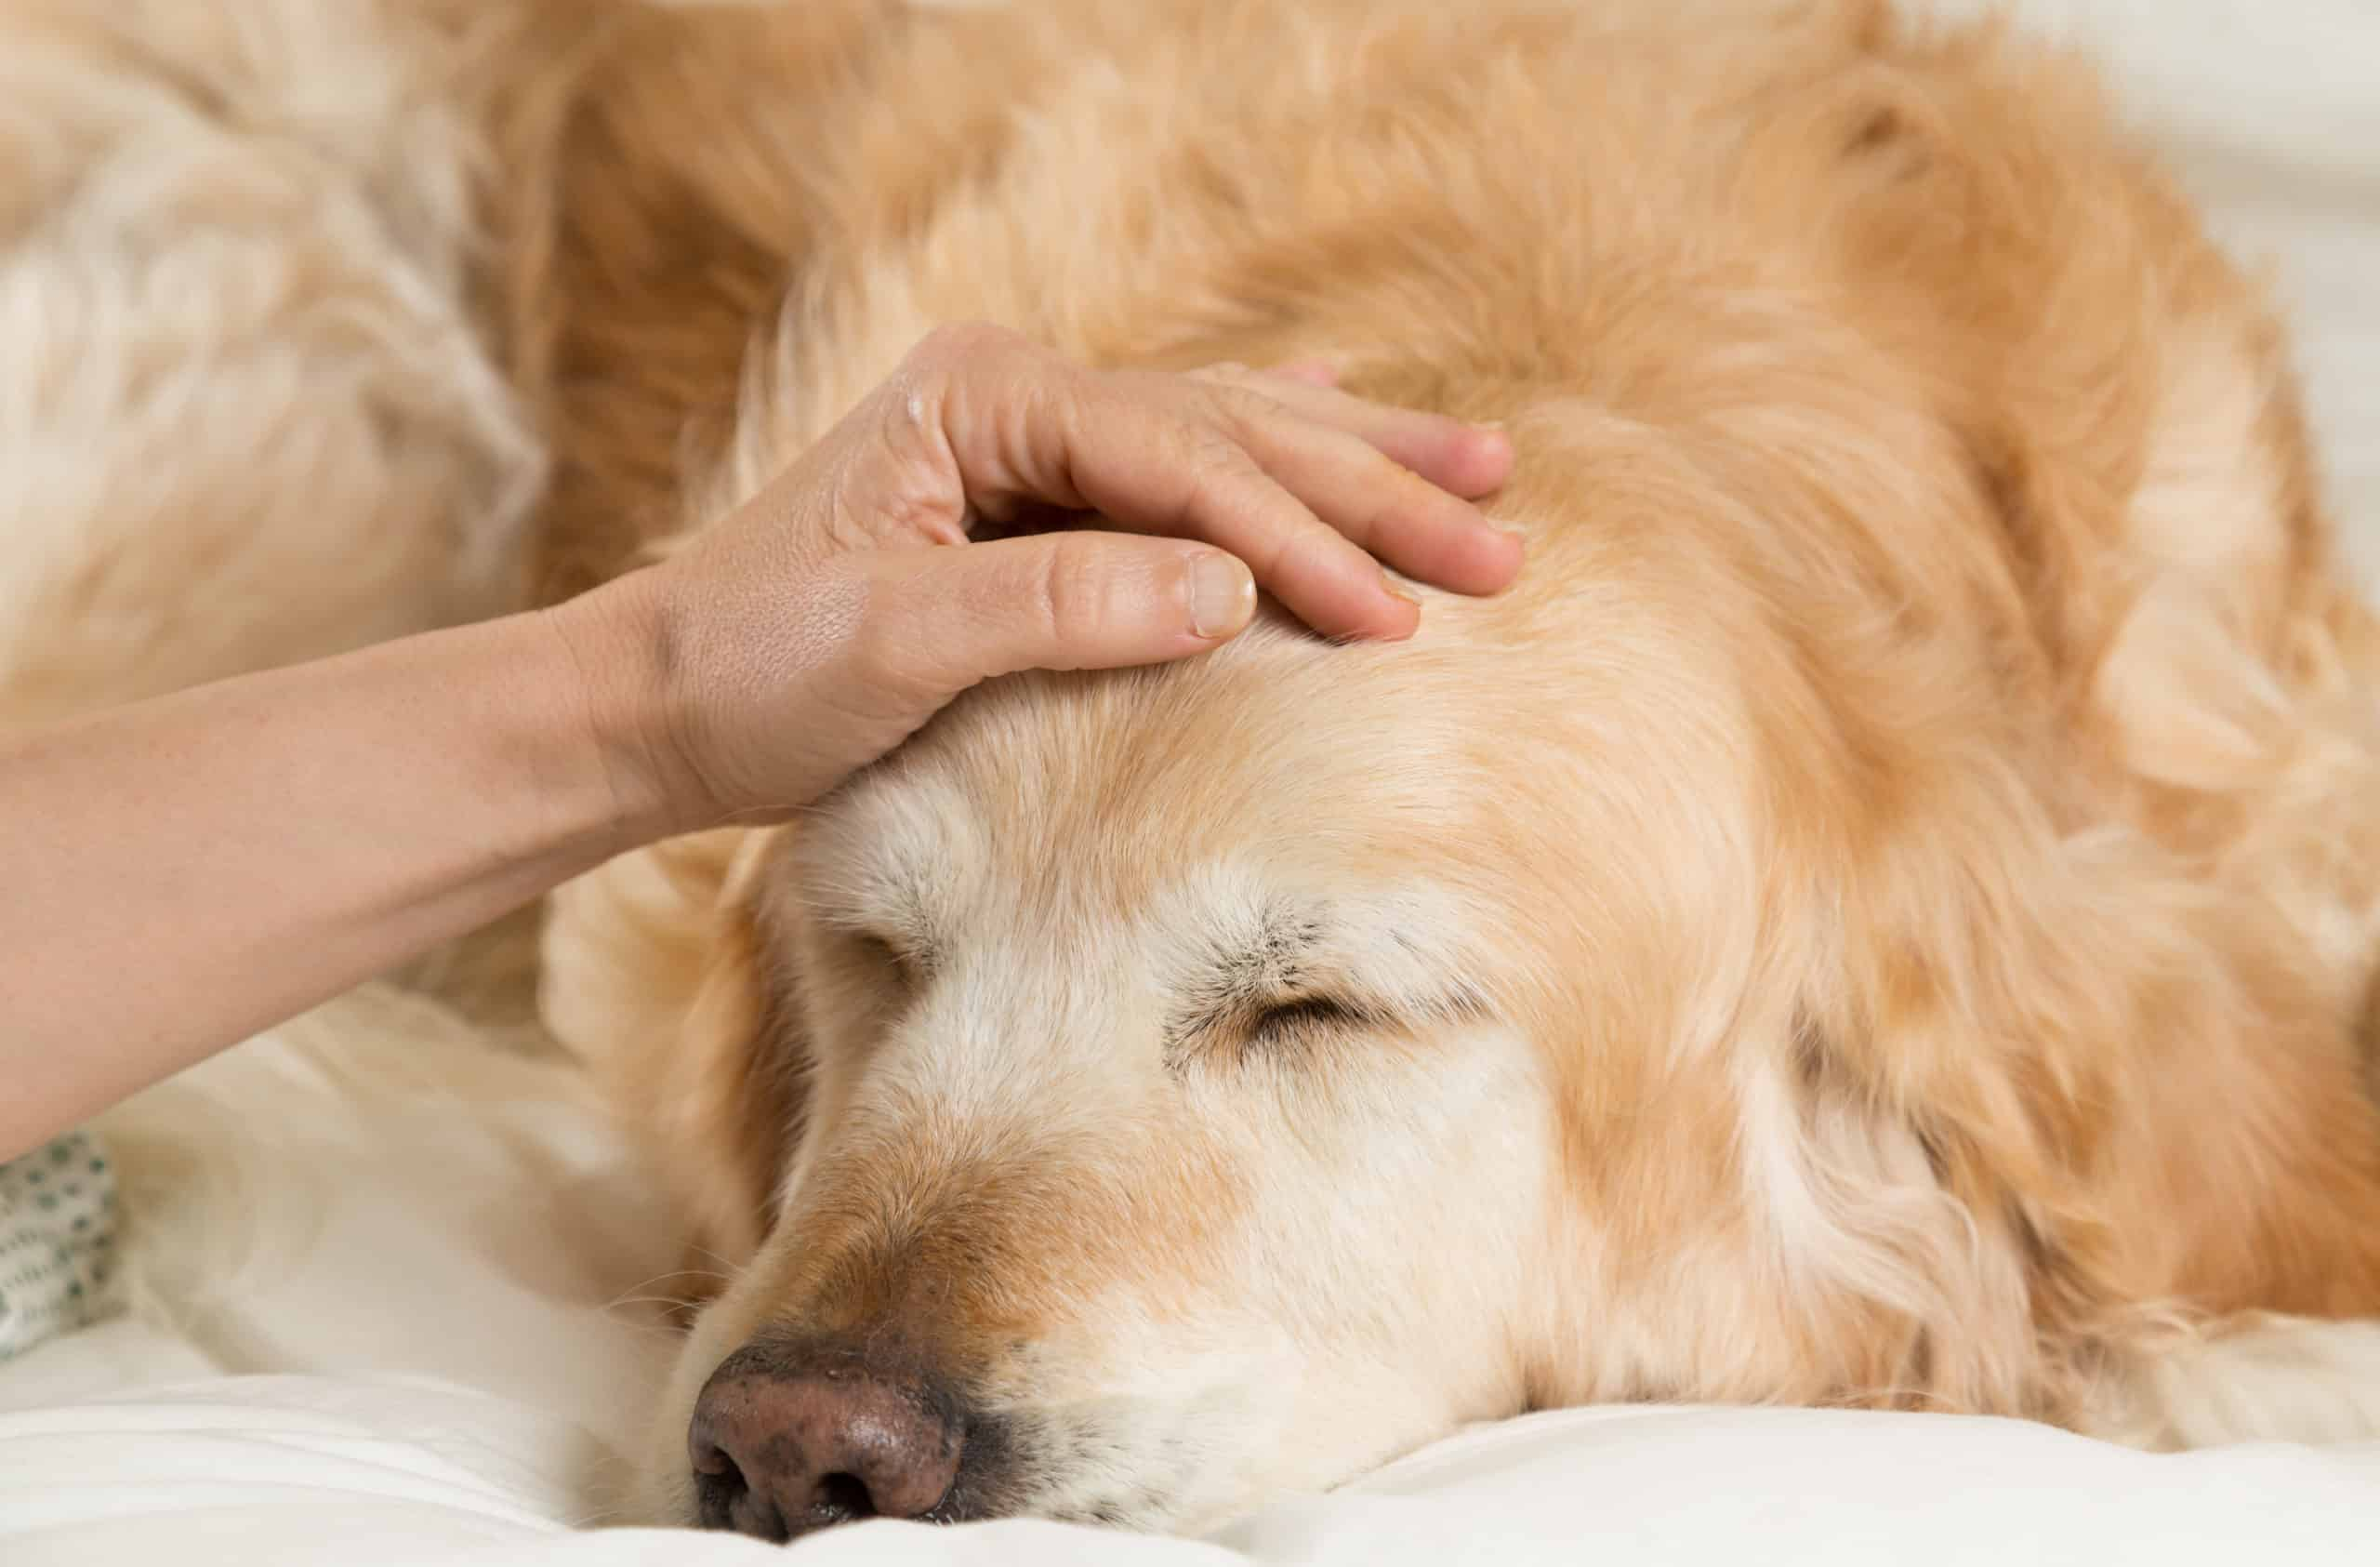 Owner comforts sick golden retriever. Gastric ulcers in dogs are caused by infections or diseases.